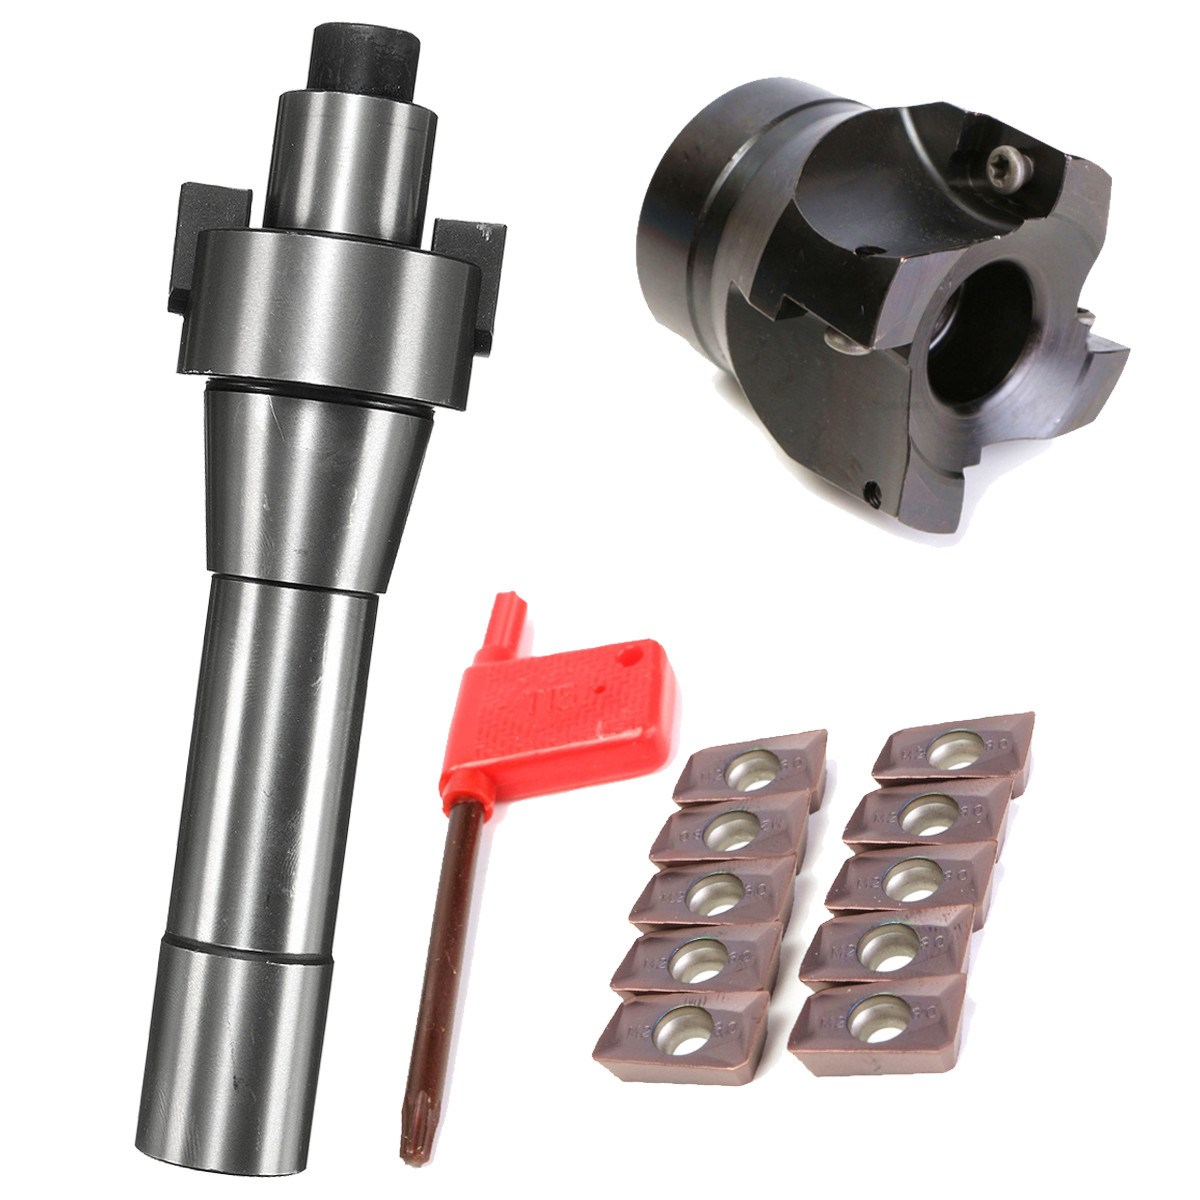 Face mill holder cnc milling tool holders cnc cutter ...